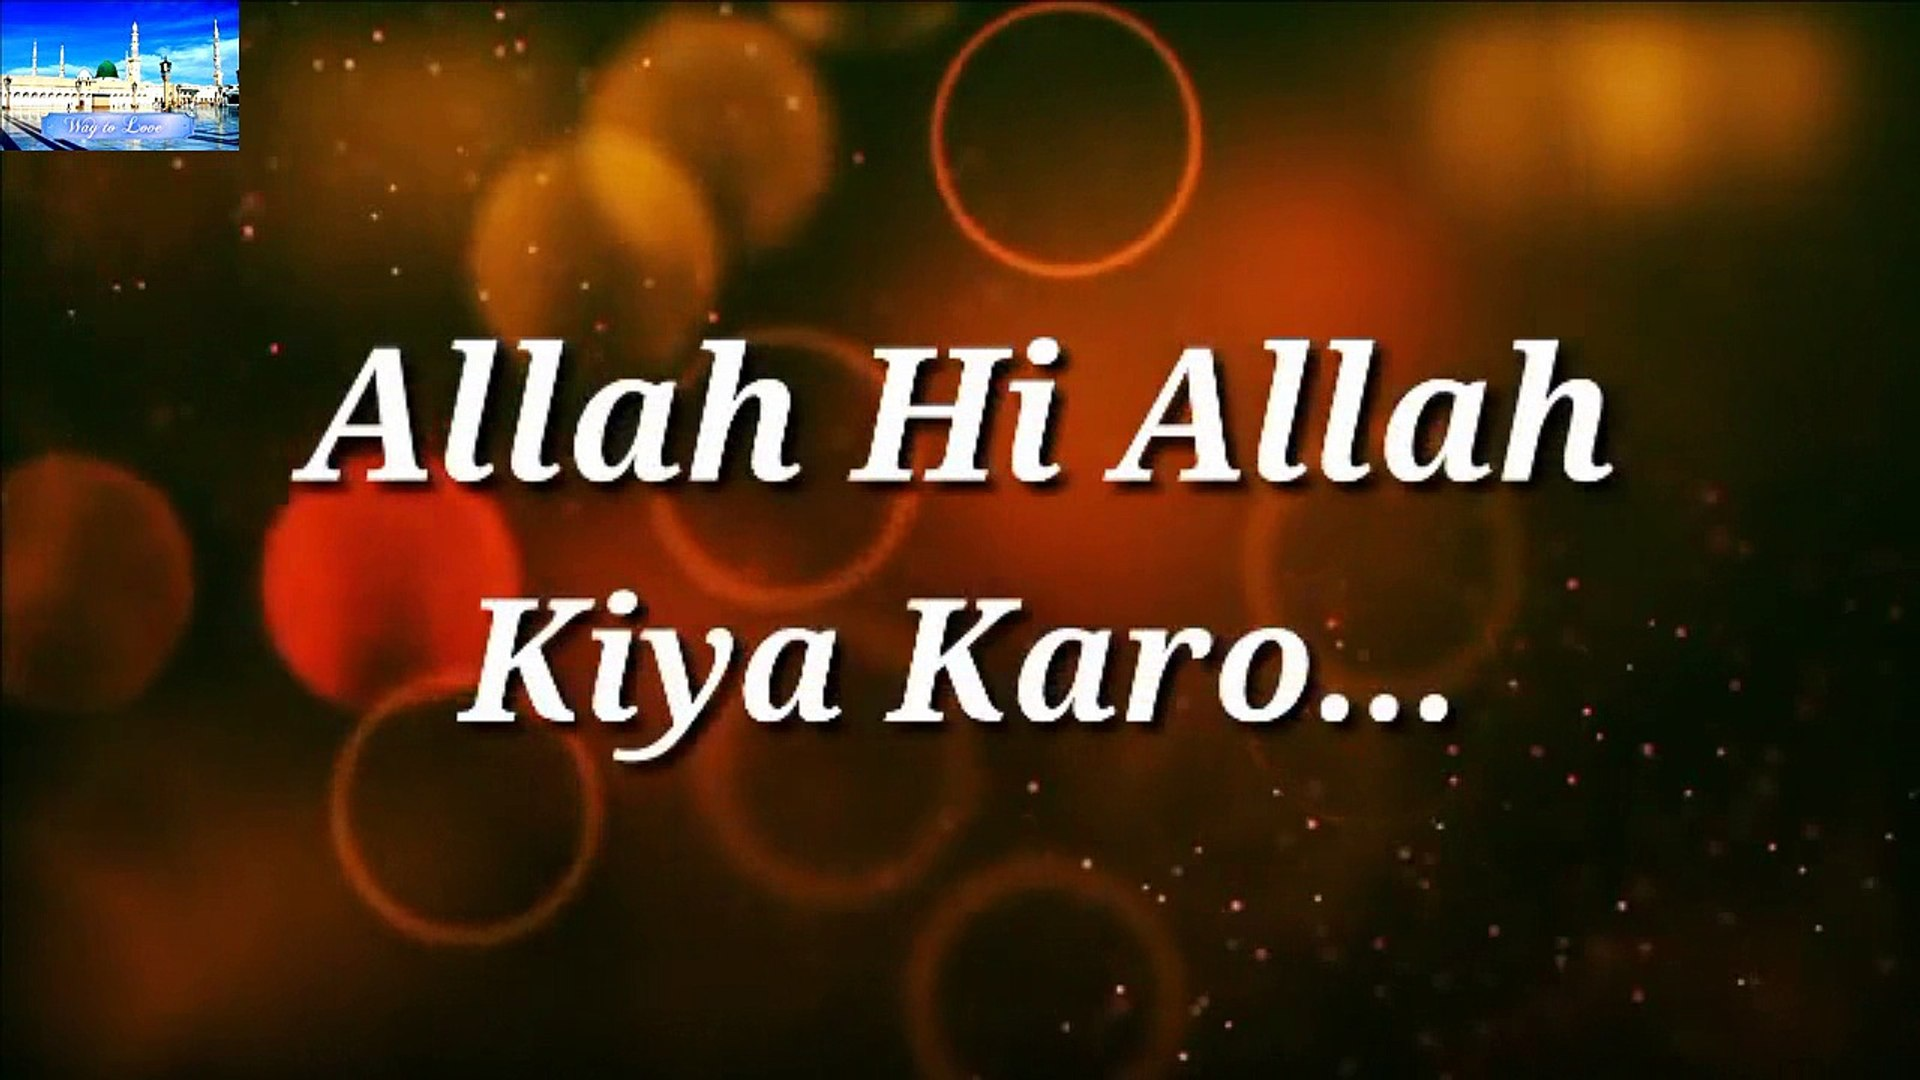 New Jumma Mubarak Whatsapp Status